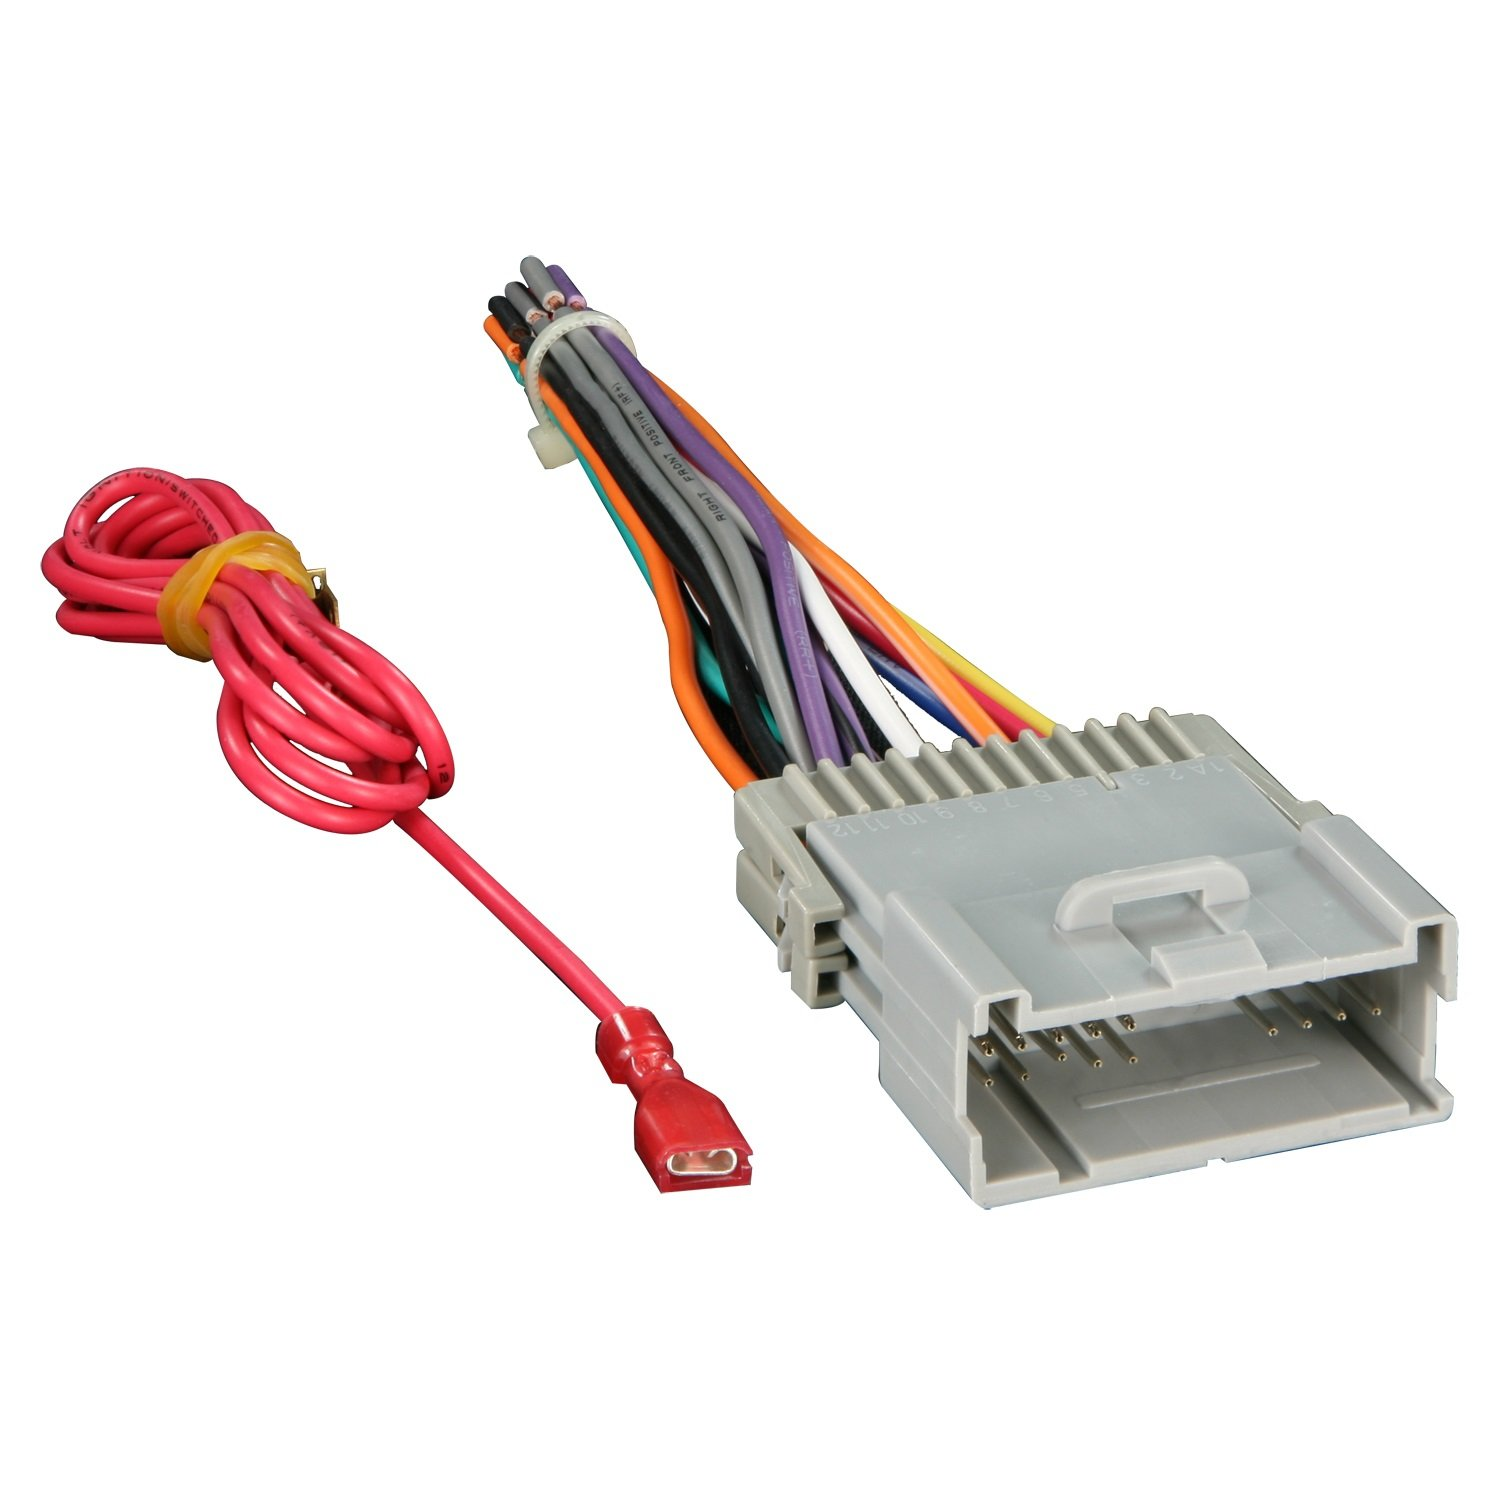 61eewxp9orL._SL1500_ amazon com metra 70 2003 radio wiring harness for gm 98 08 Hyundai Sonata Aftermarket Stereo Wiring Harness at gsmportal.co